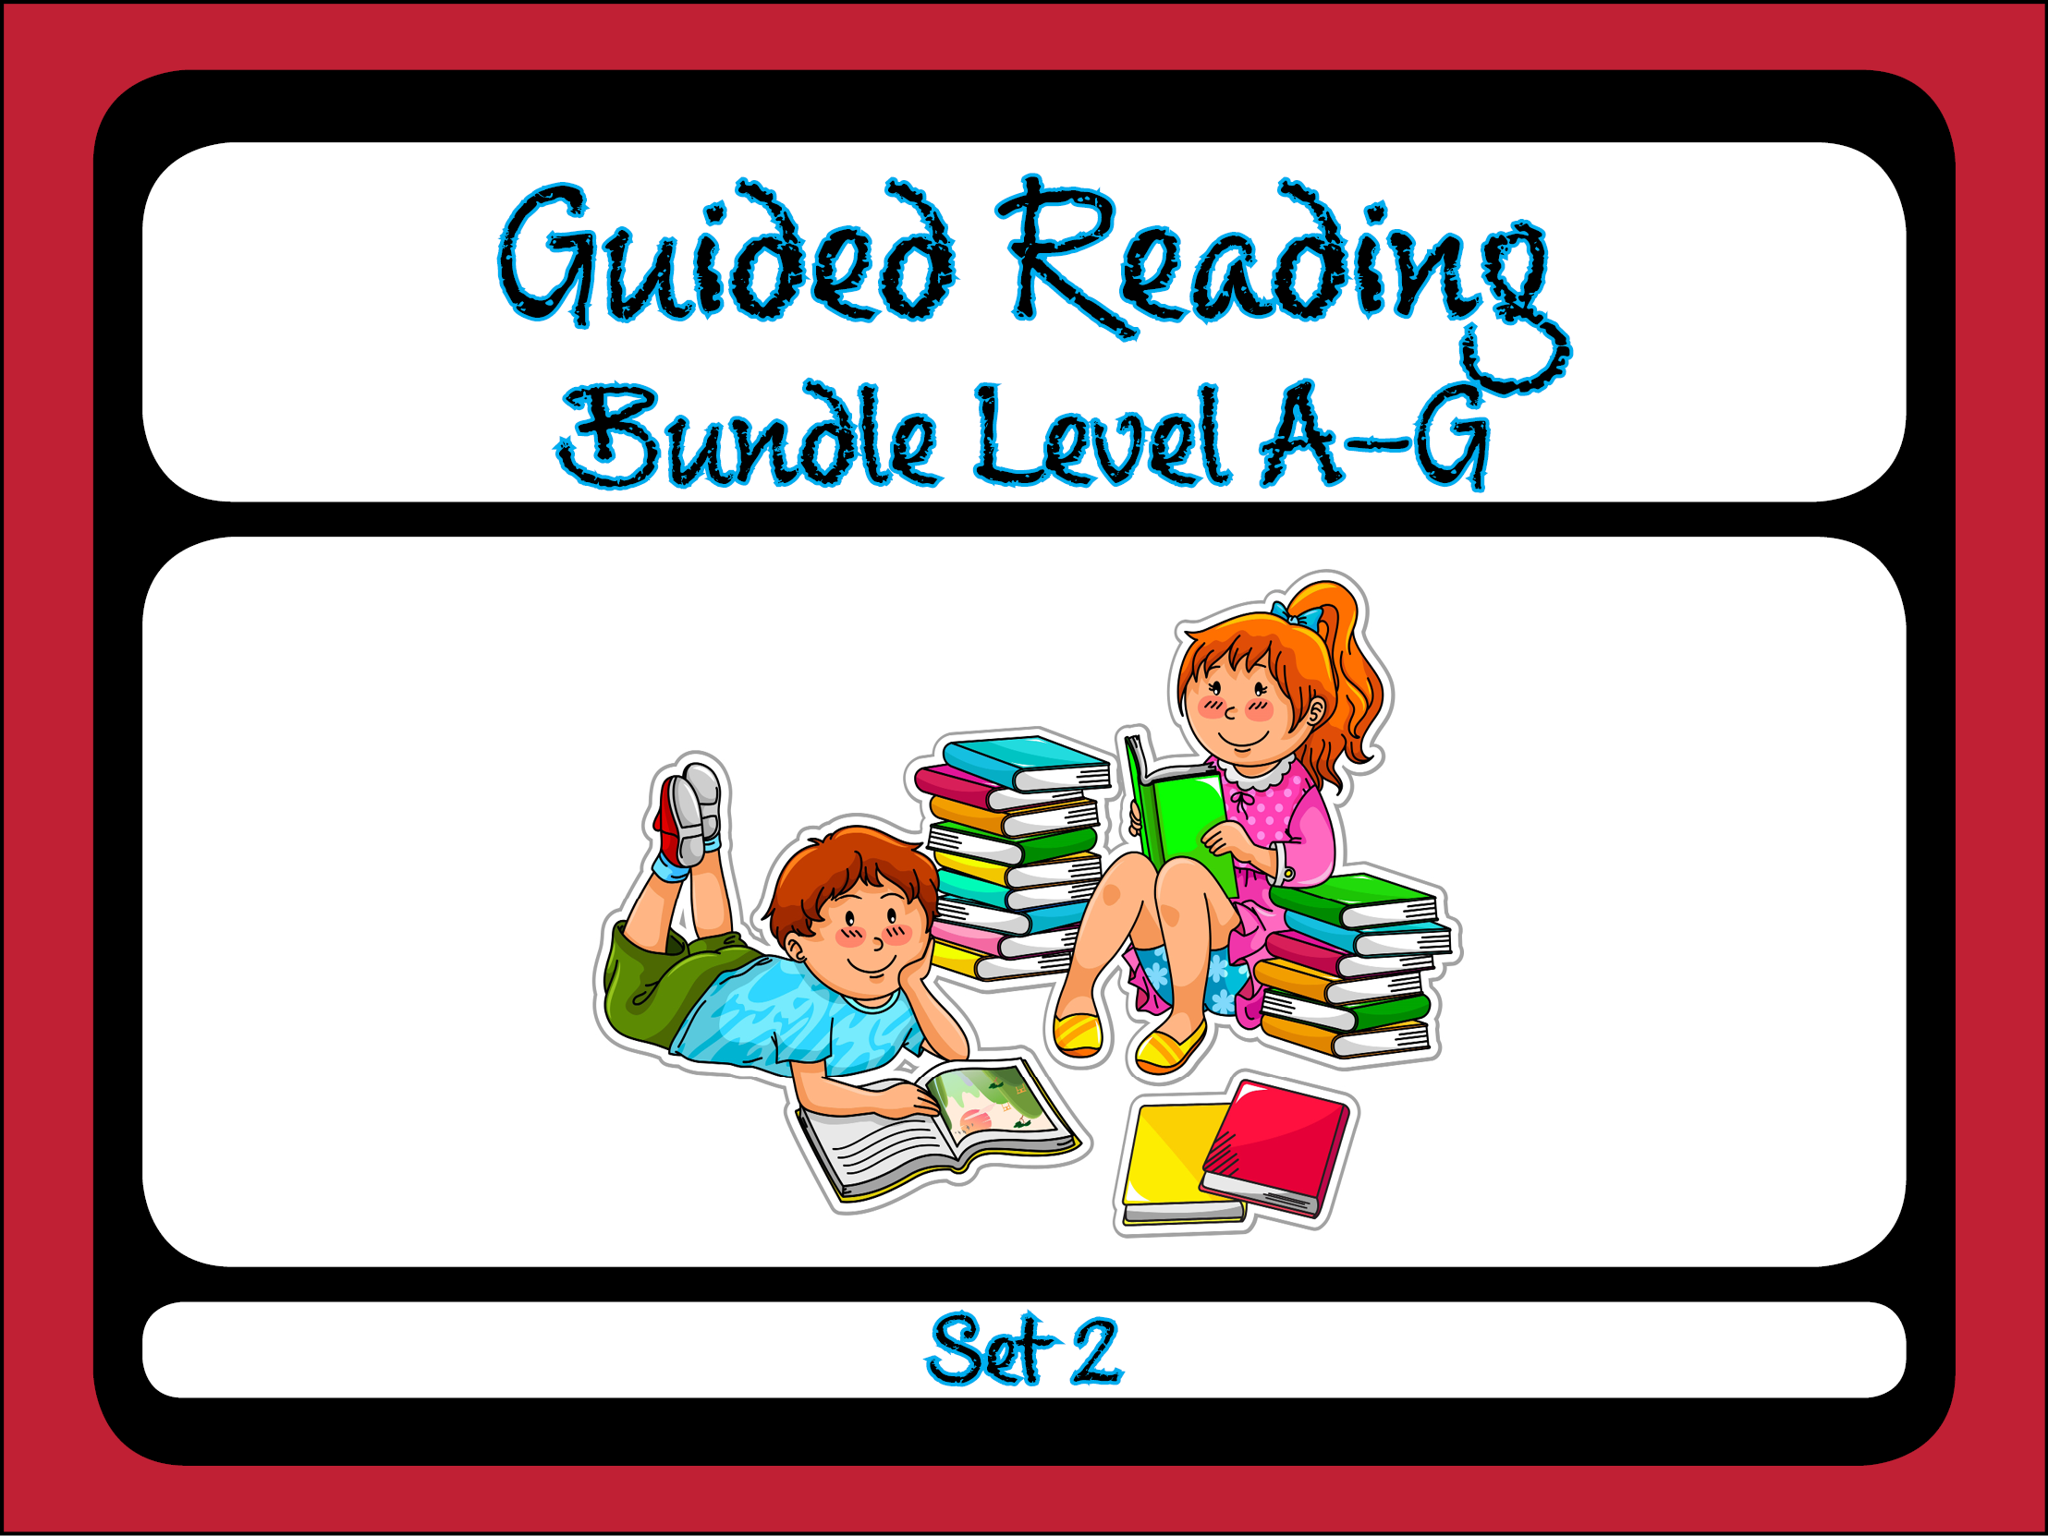 Guided Reading Level A-G Set 2